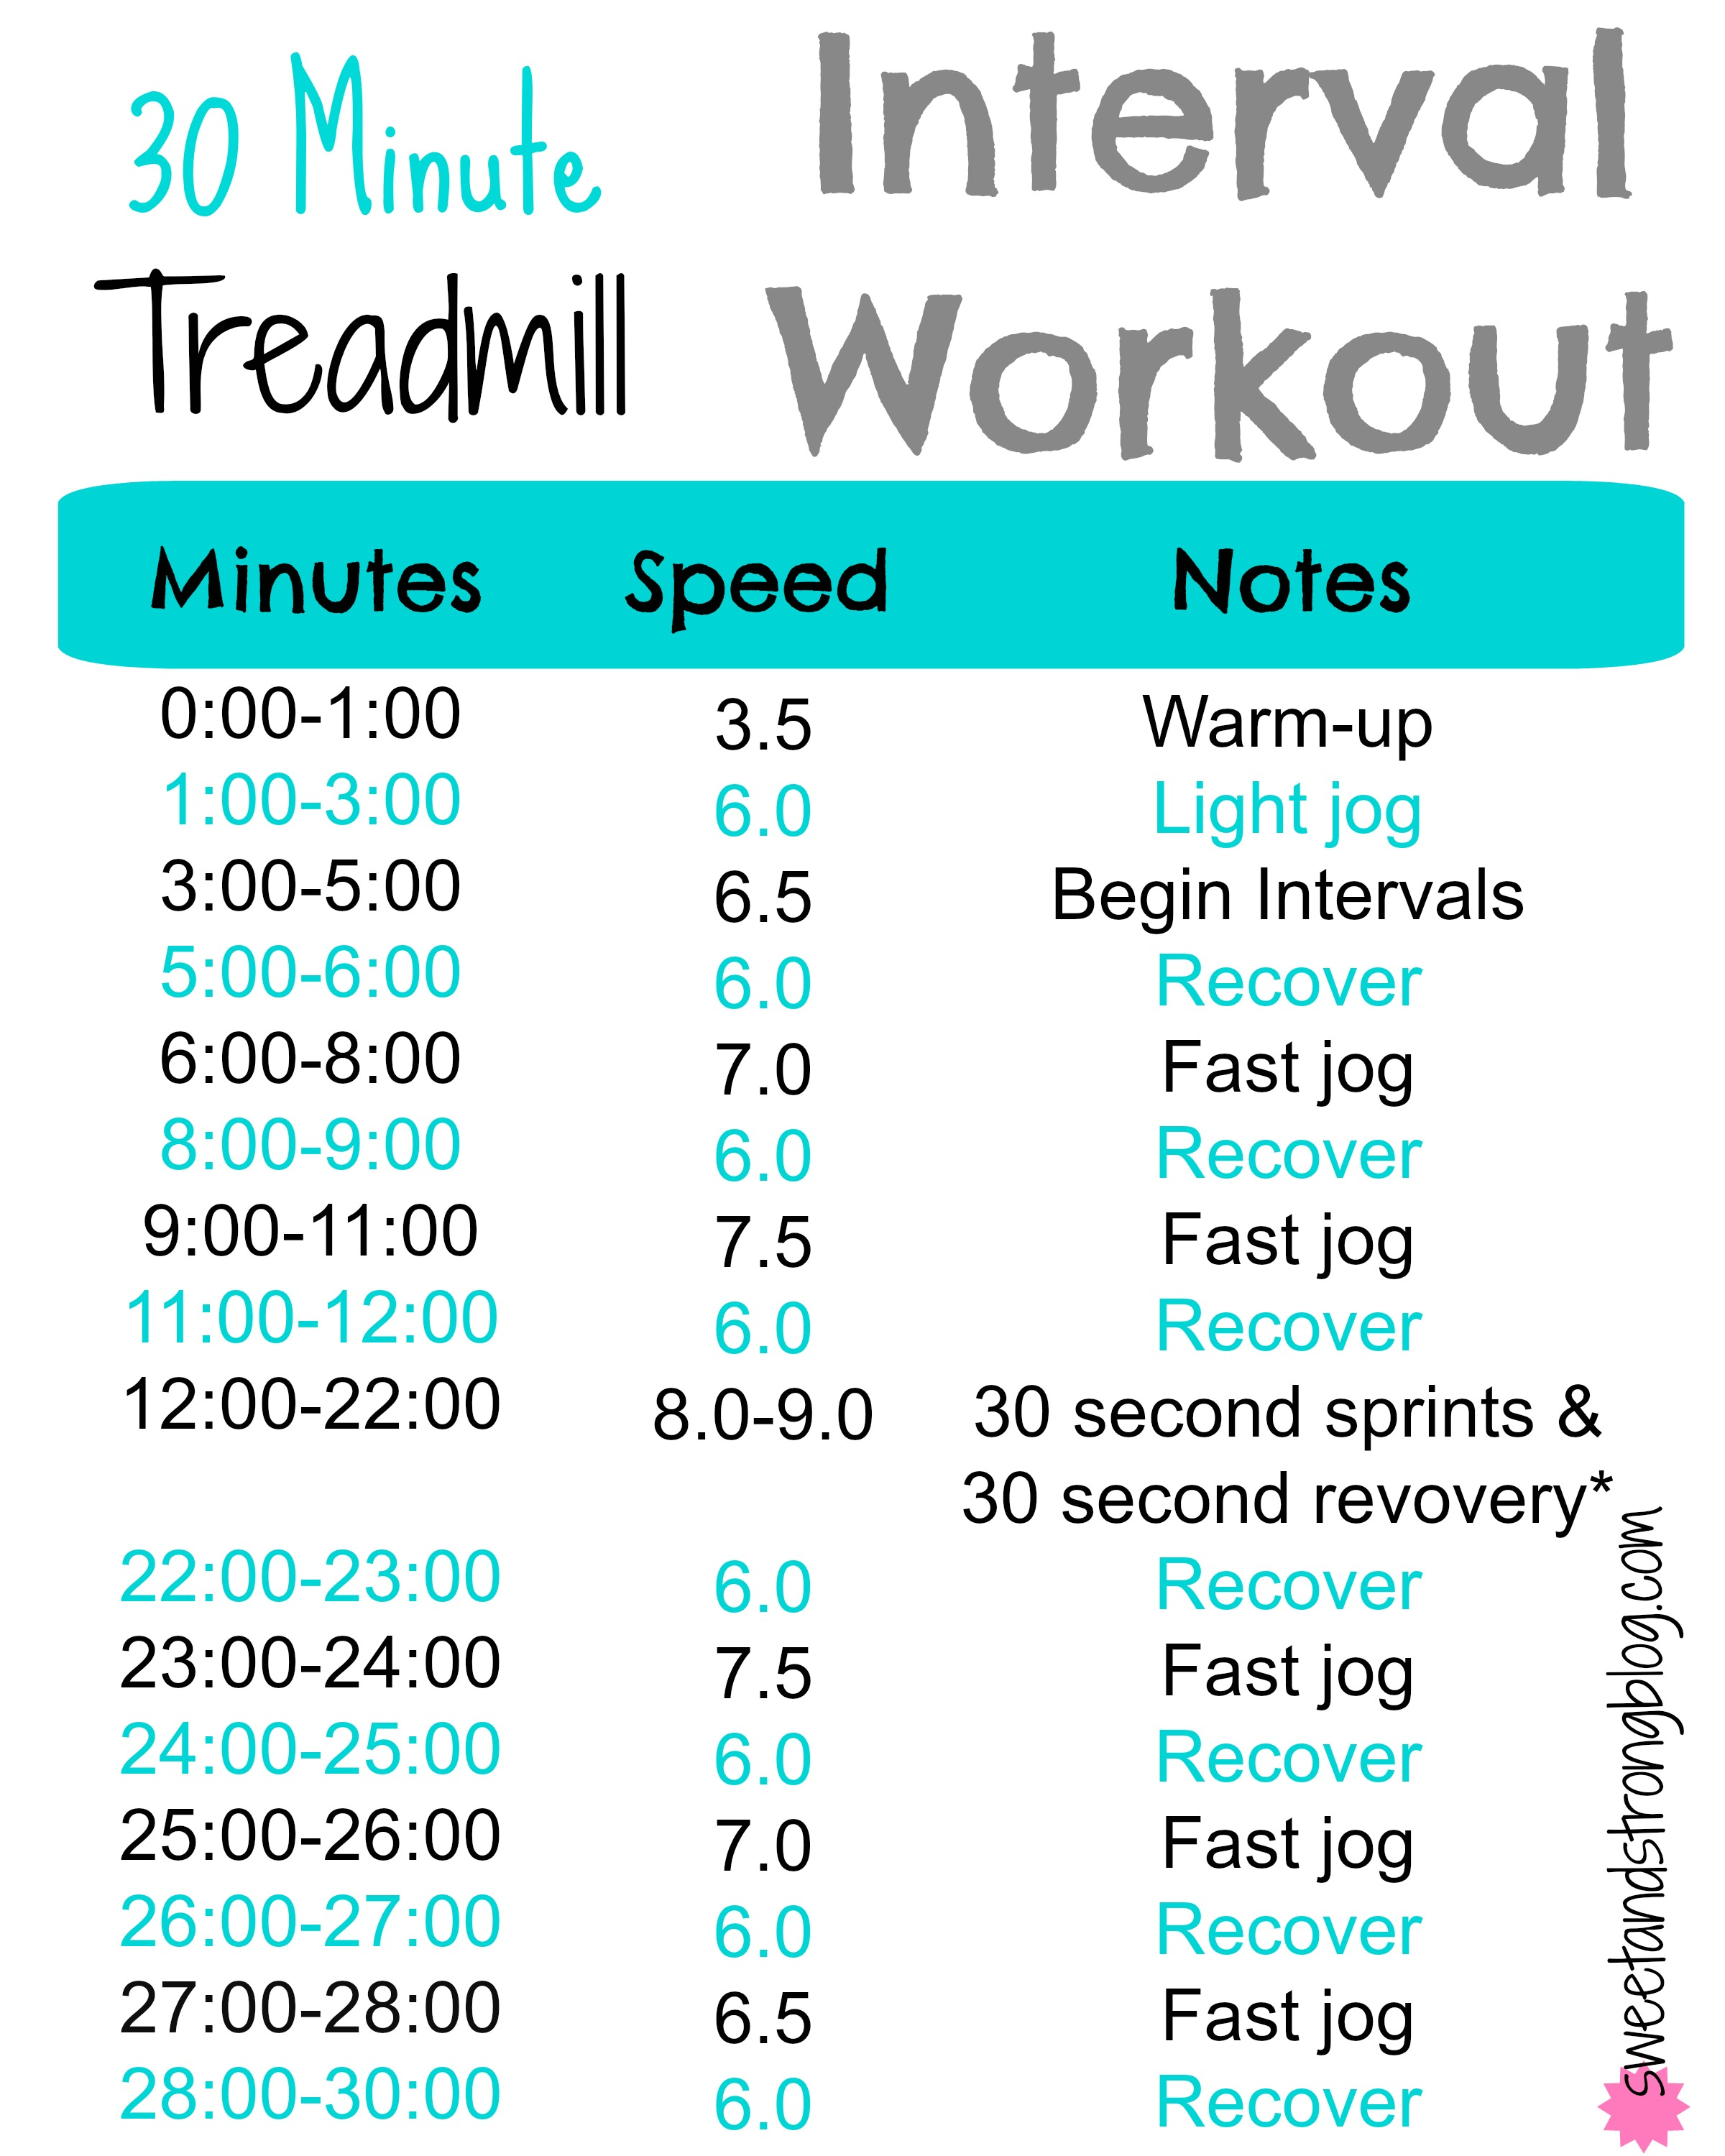 Sprint Training With A 30 Minute Treadmill Interval